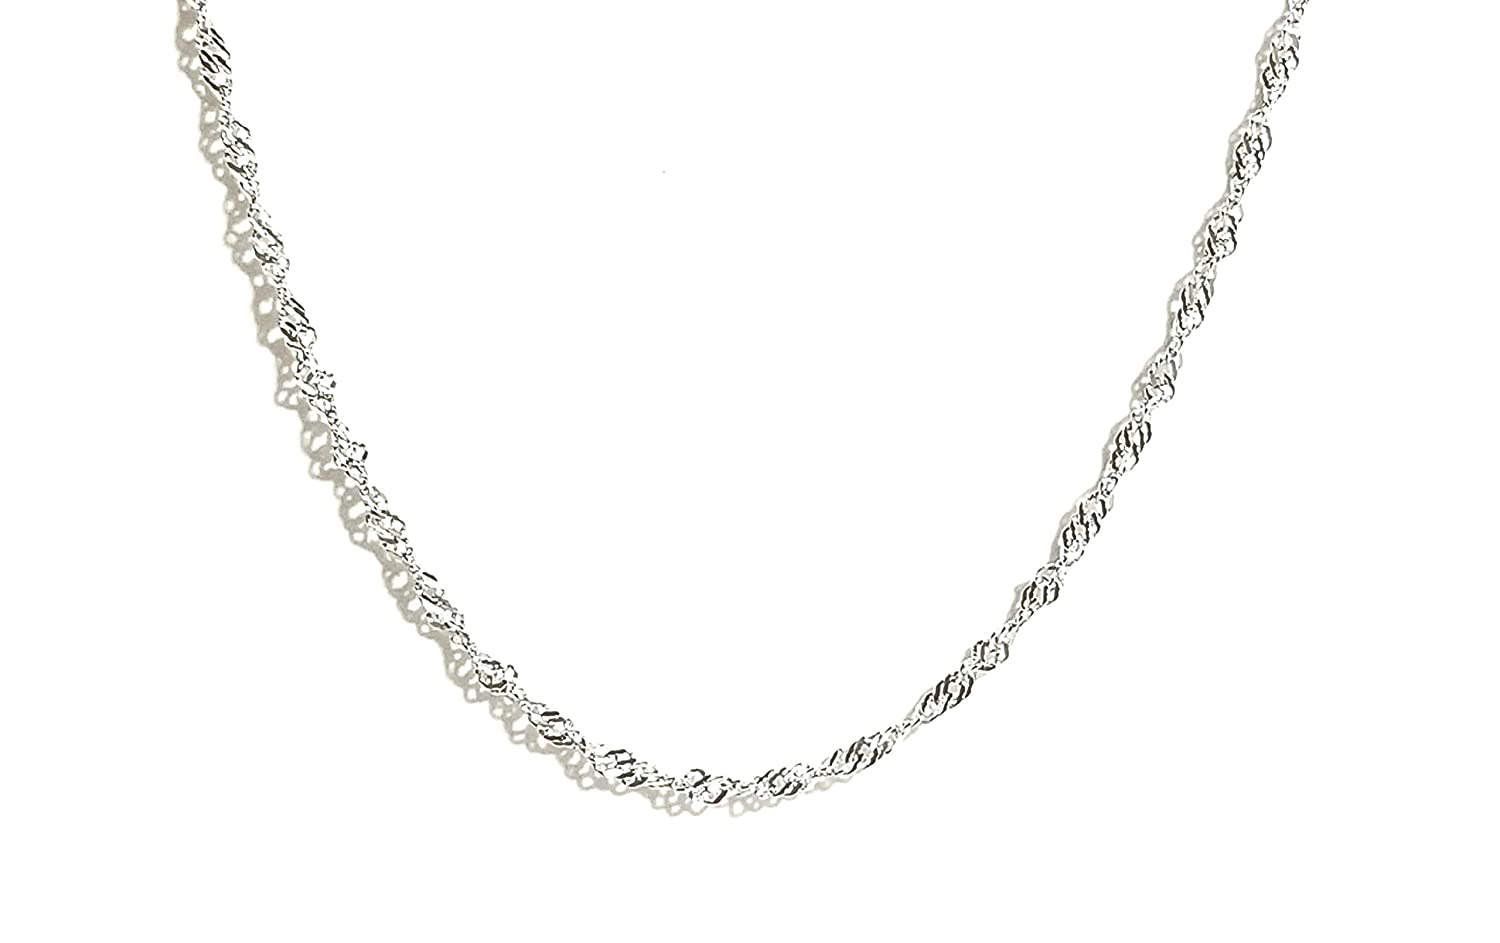 JL Silver Chain Sterling Silver Necklaces for Women Necklaces